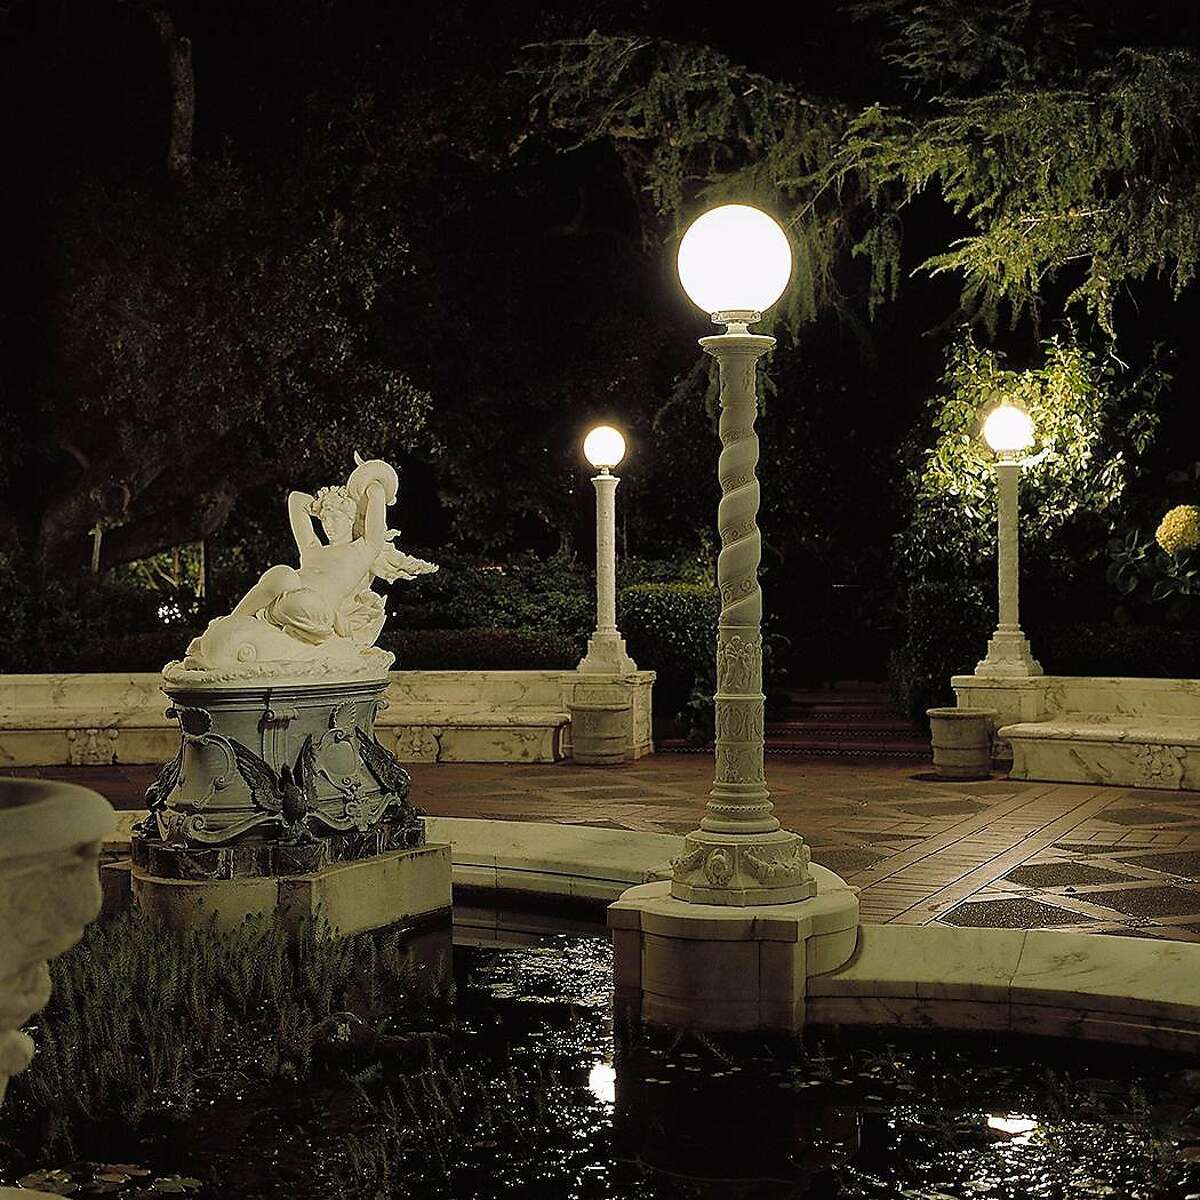 The Main Terrace in front of Casa Grande at night. Statue is of Galatea.